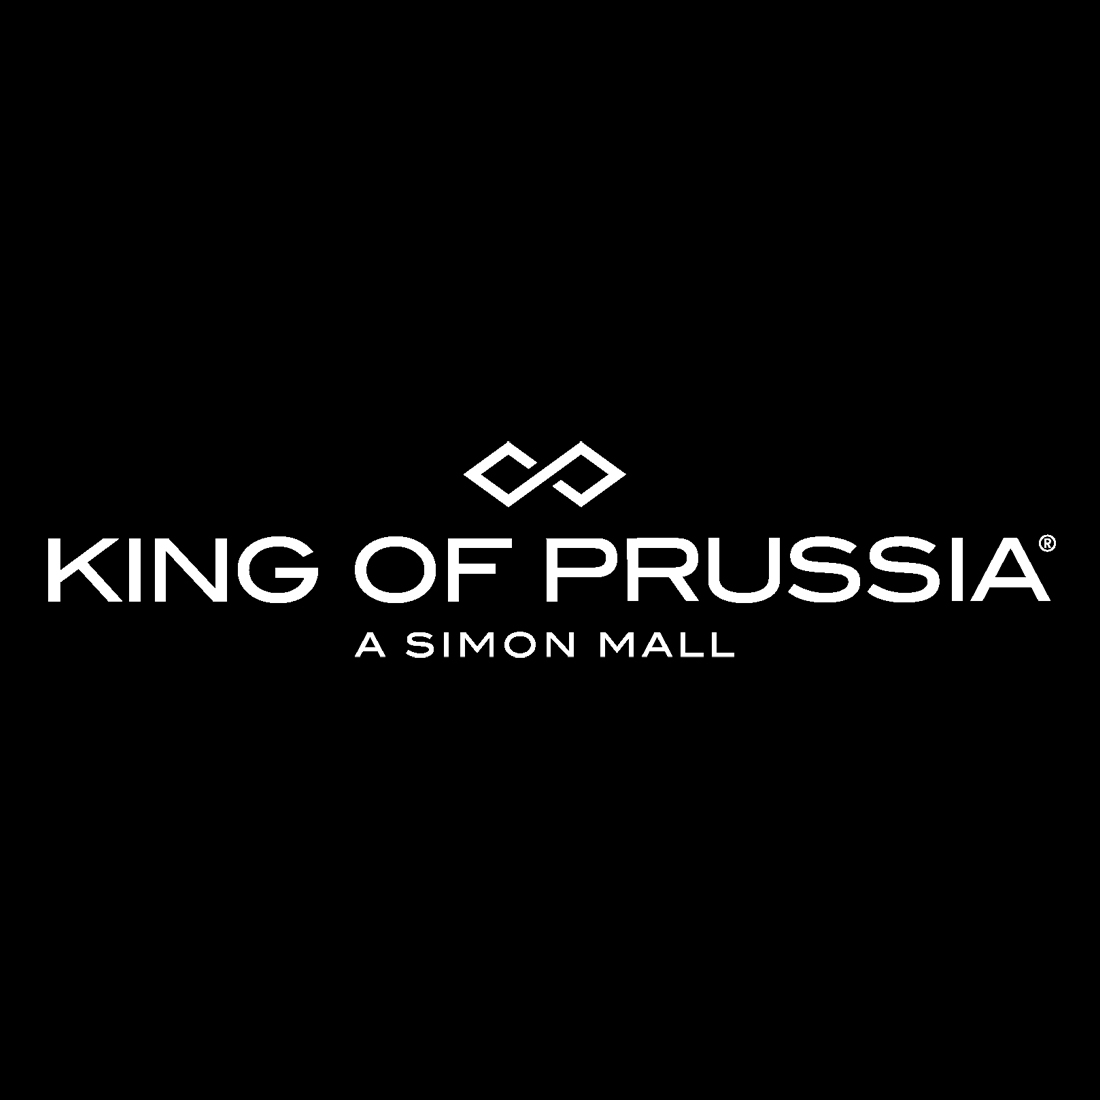 King of Prussia - King of Prussia, PA - Factory Outlet Stores